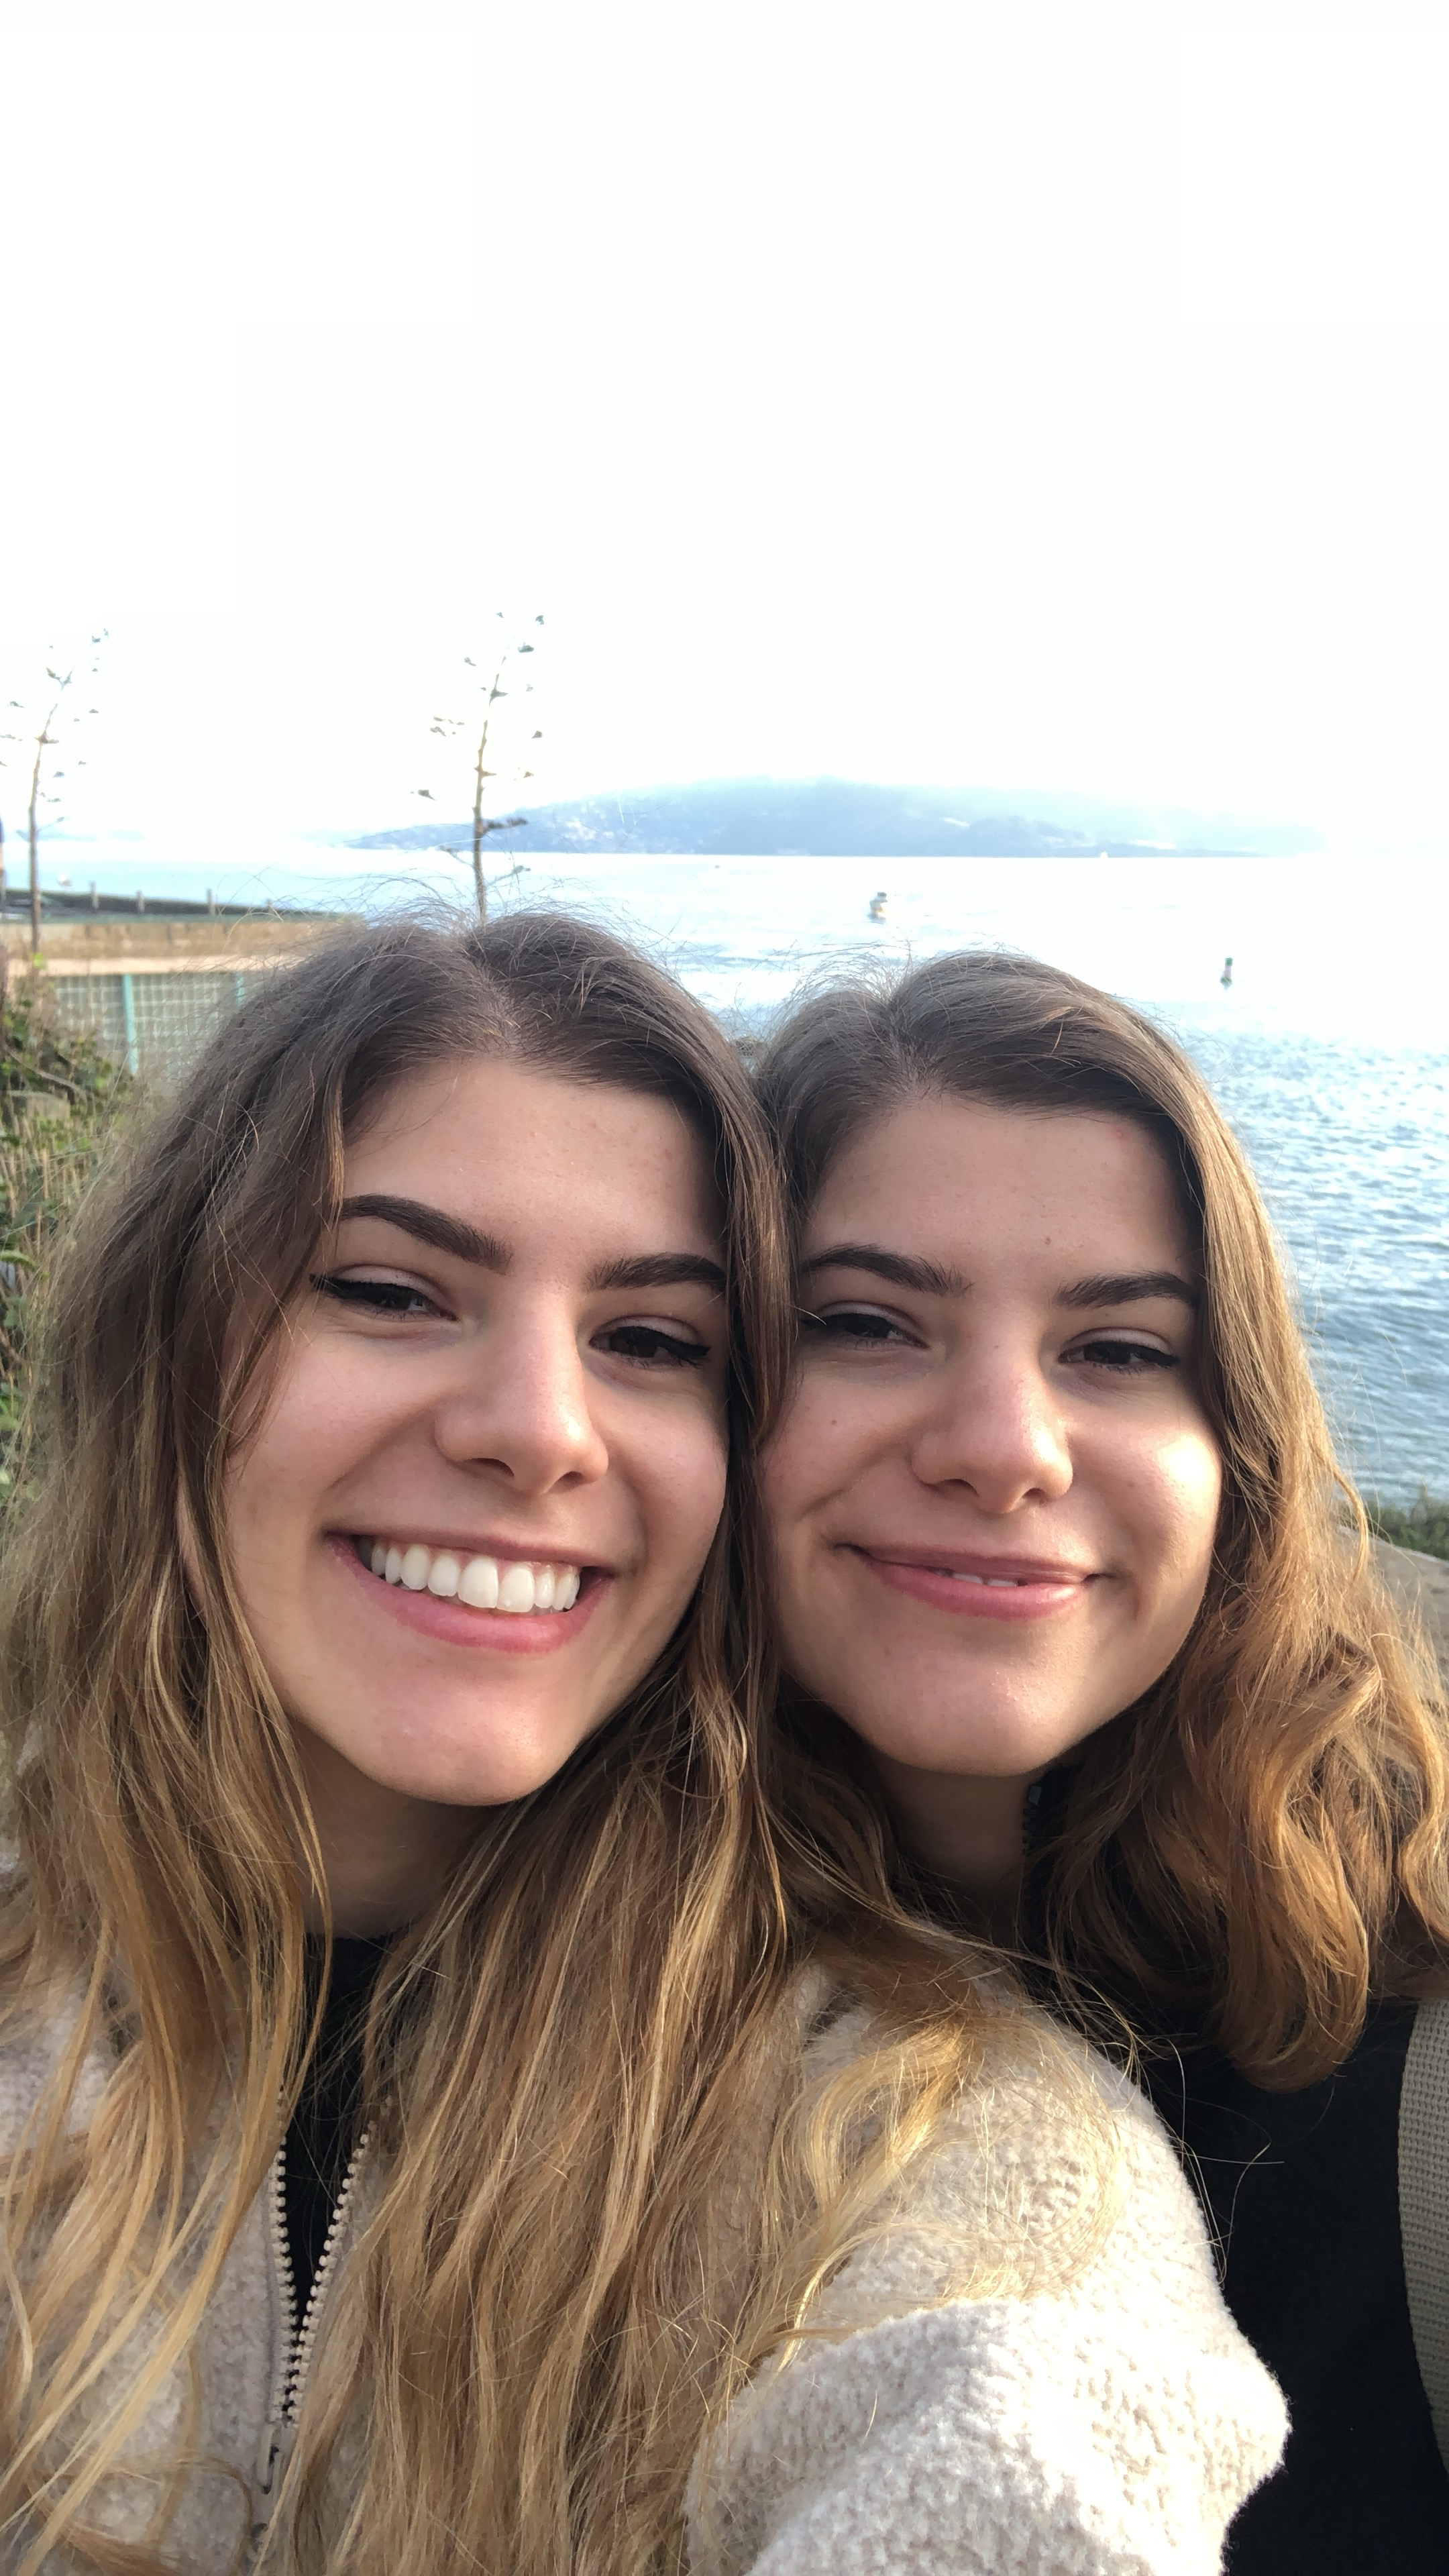 Twin sisters Geevie, left, and Sophia Wood are selling homemade products that offer natural, sustainable alternatives to everyday items like deodorant and lip balm. Submitted photo.